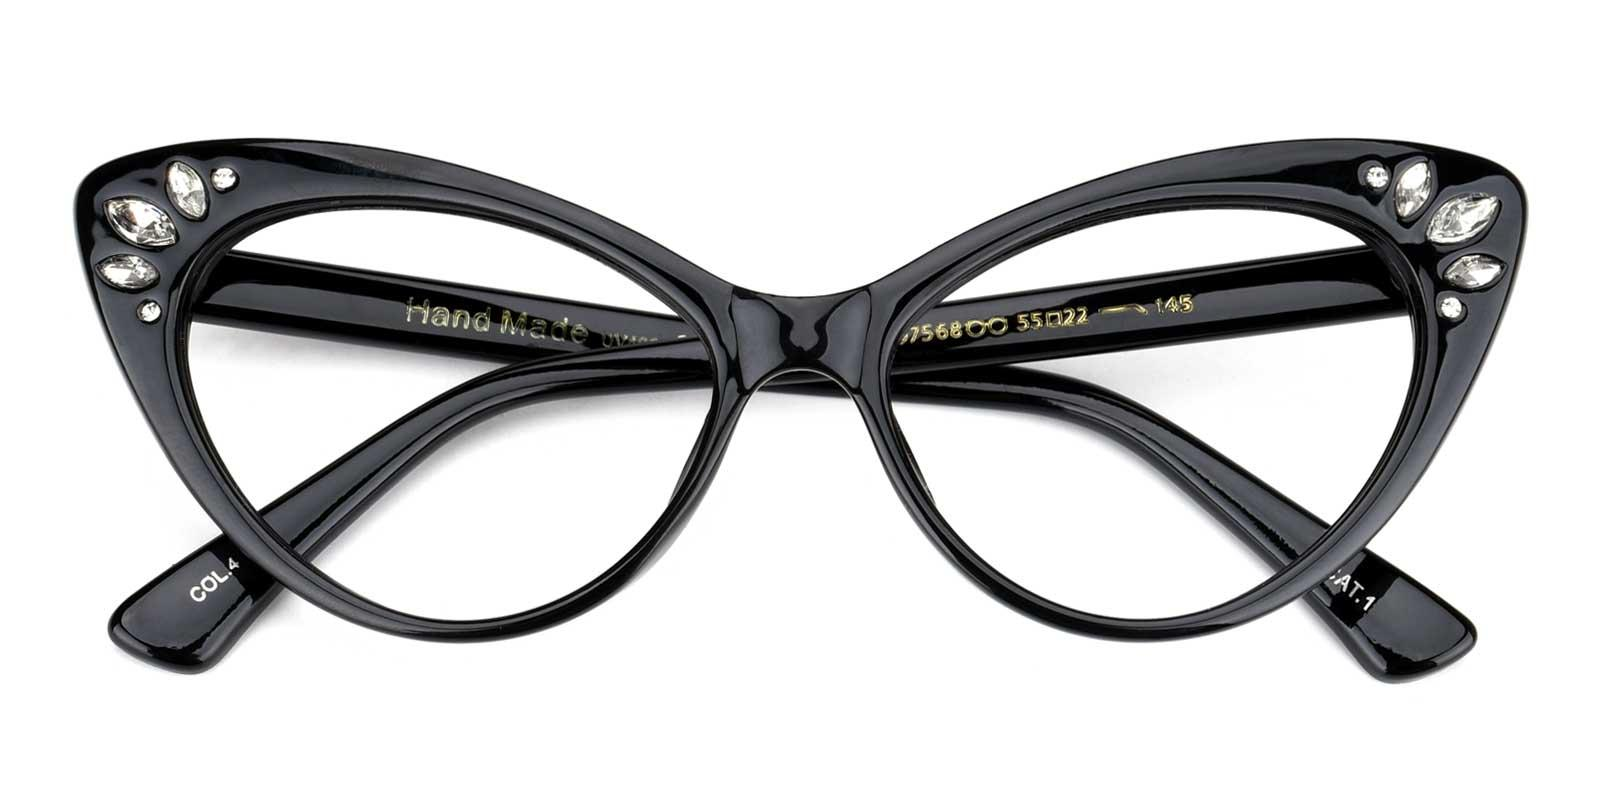 Samber-Black-Cat-Plastic-Eyeglasses-detail